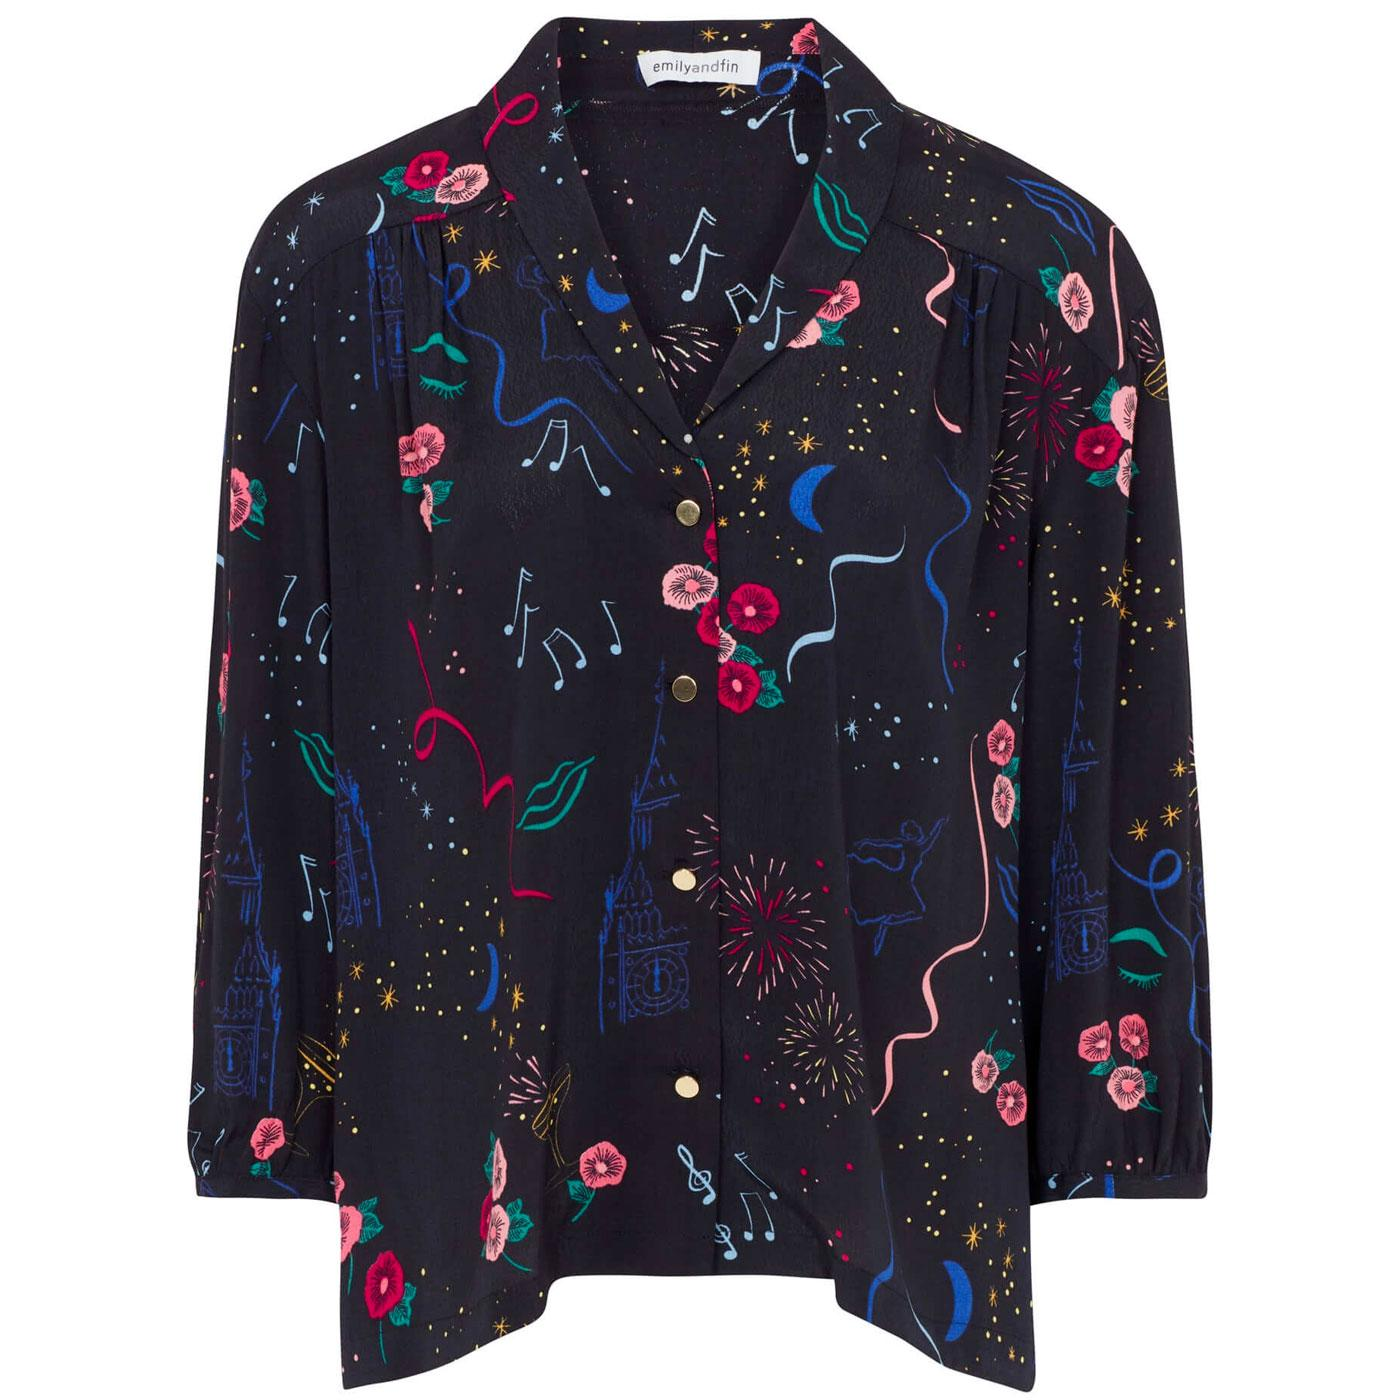 Florrie EMILY & FIN New Years Party Printed Blouse